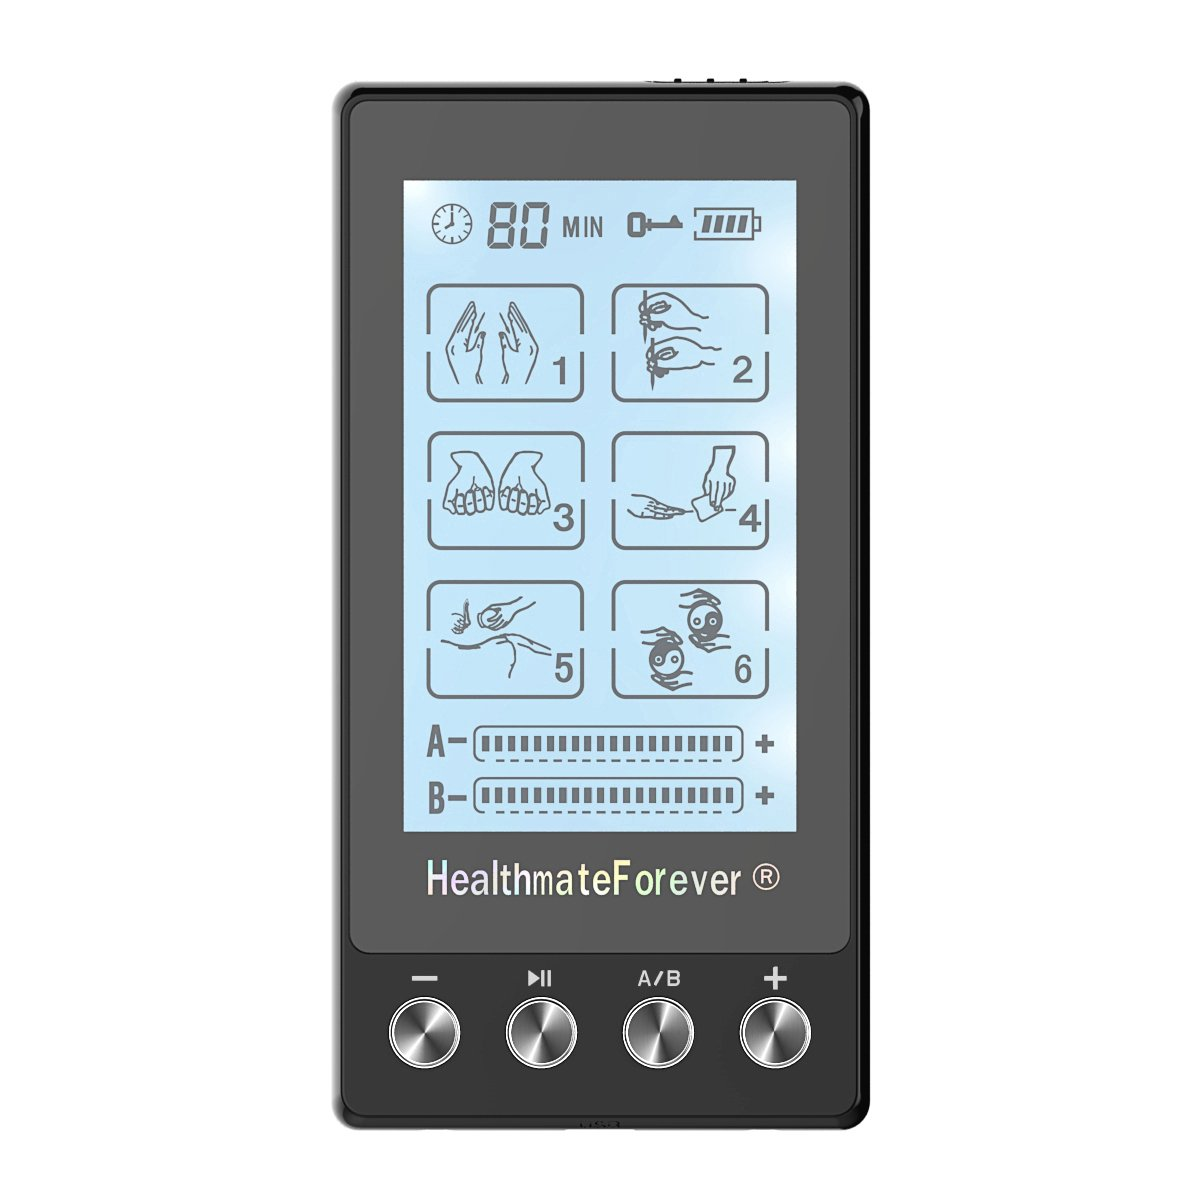 TS6AB HealthmateForever TENS Unit Electrical Muscle Stimulator Black + 10 Pairs of Pads